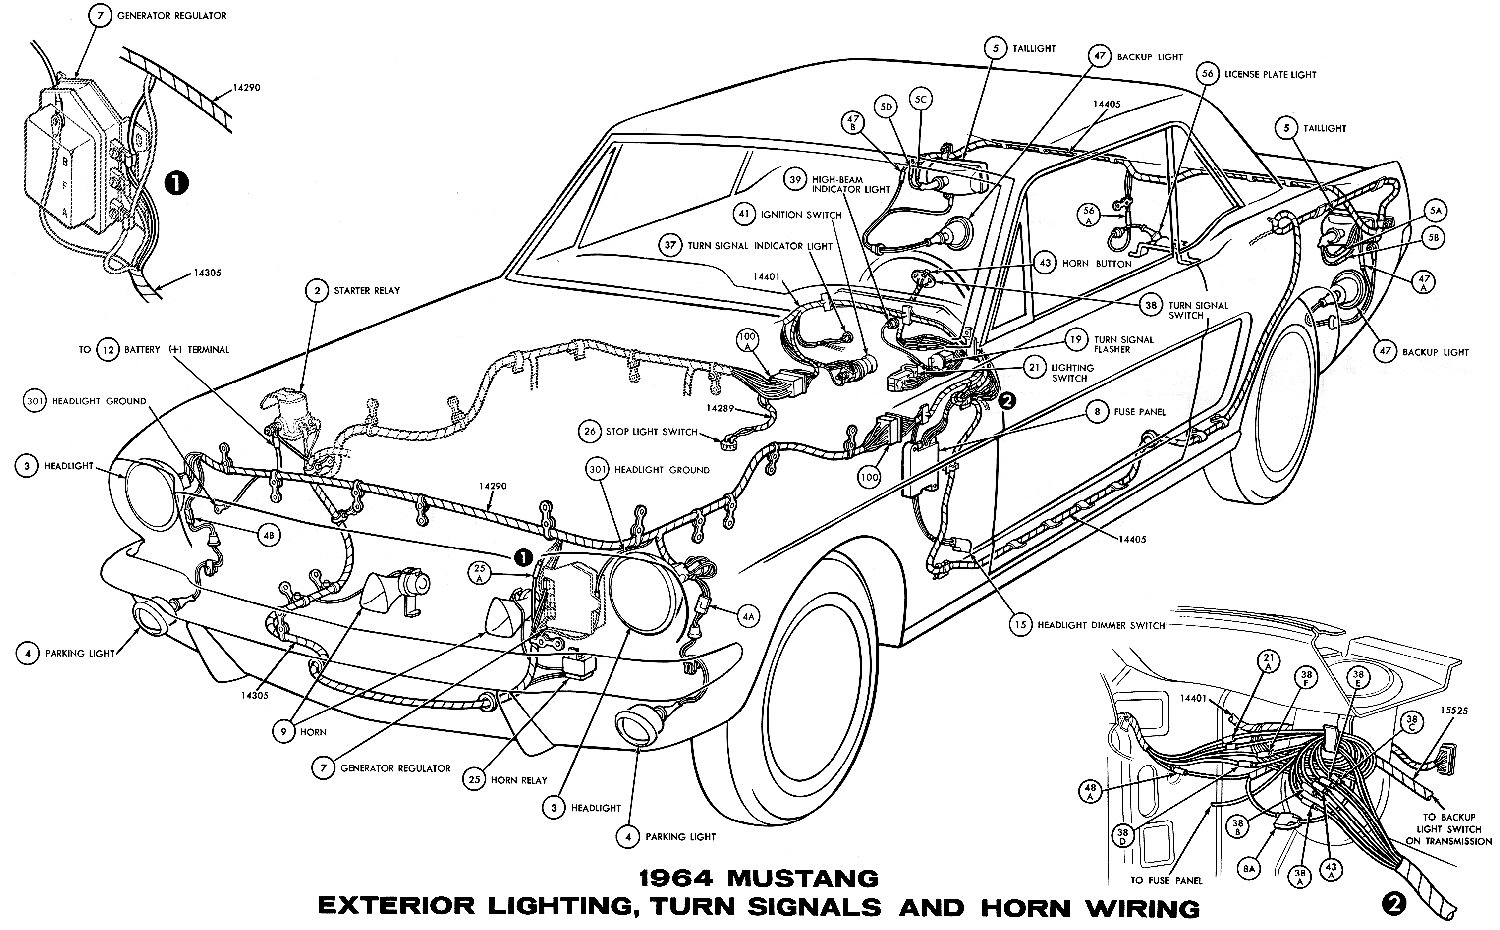 66 mustang voltage regulator wiring diagram   43 wiring